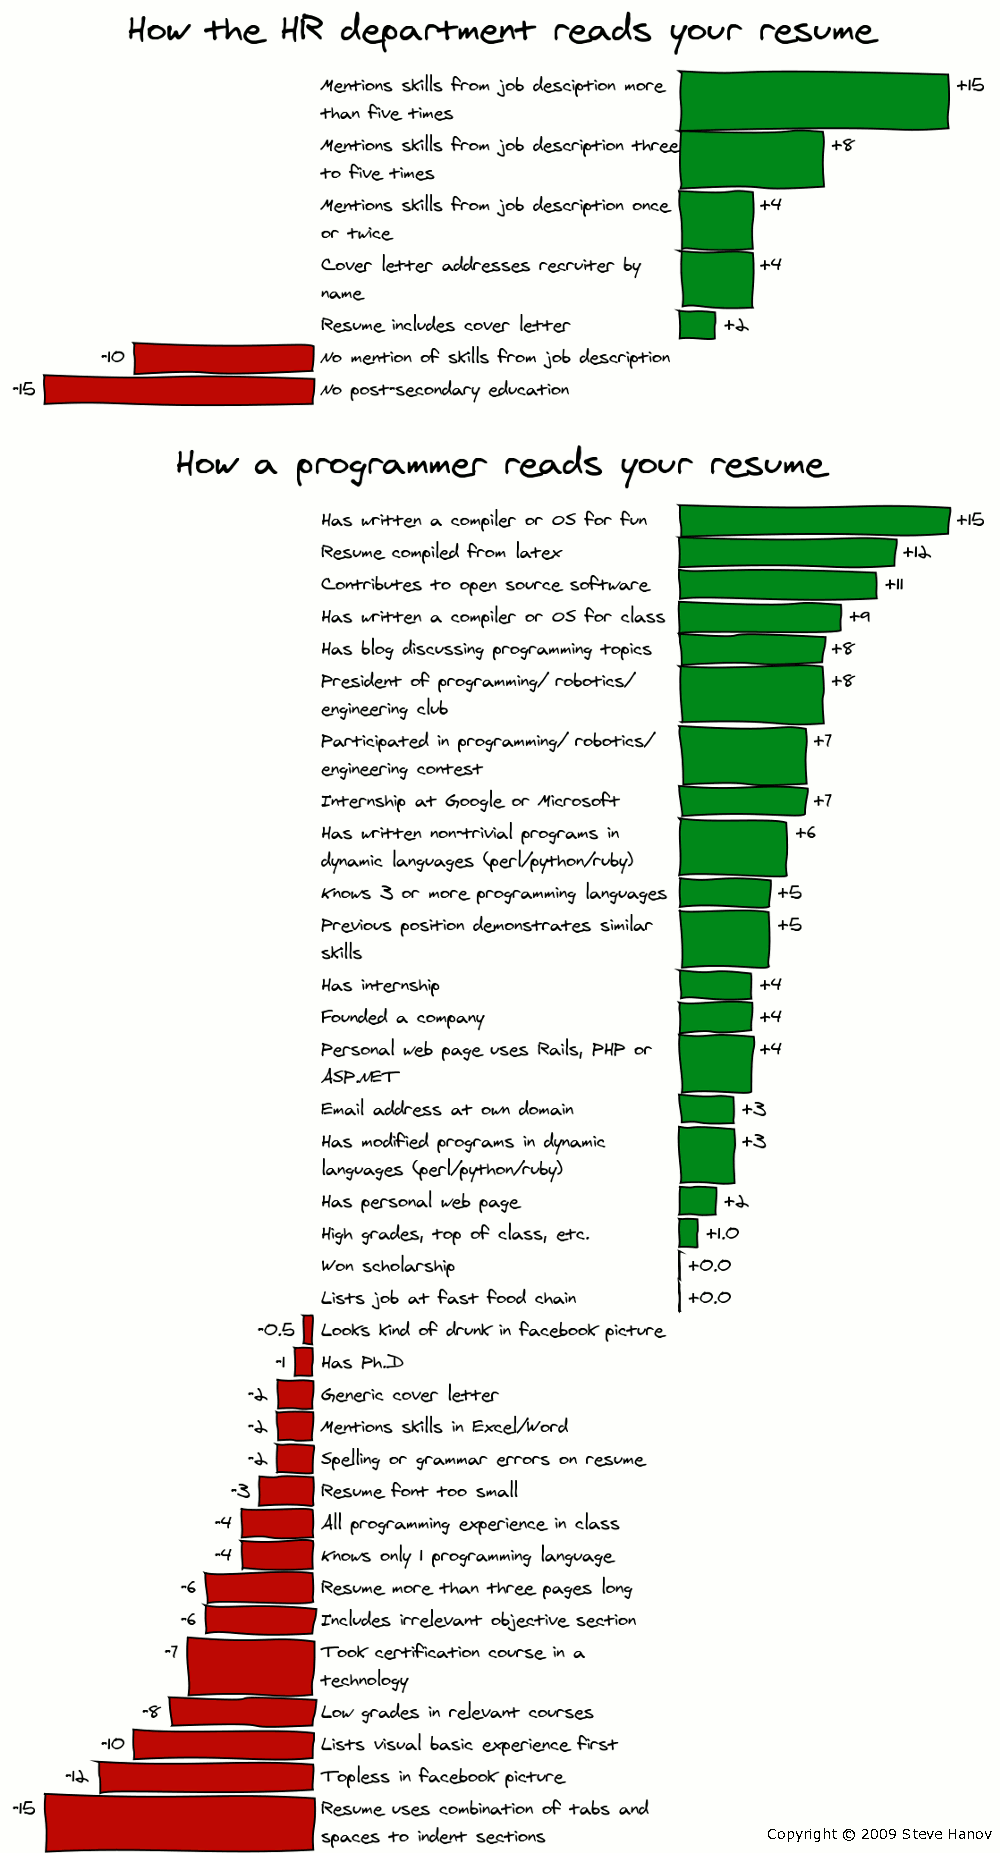 Programmer Resume. how a programmer reads your resume (comic ...